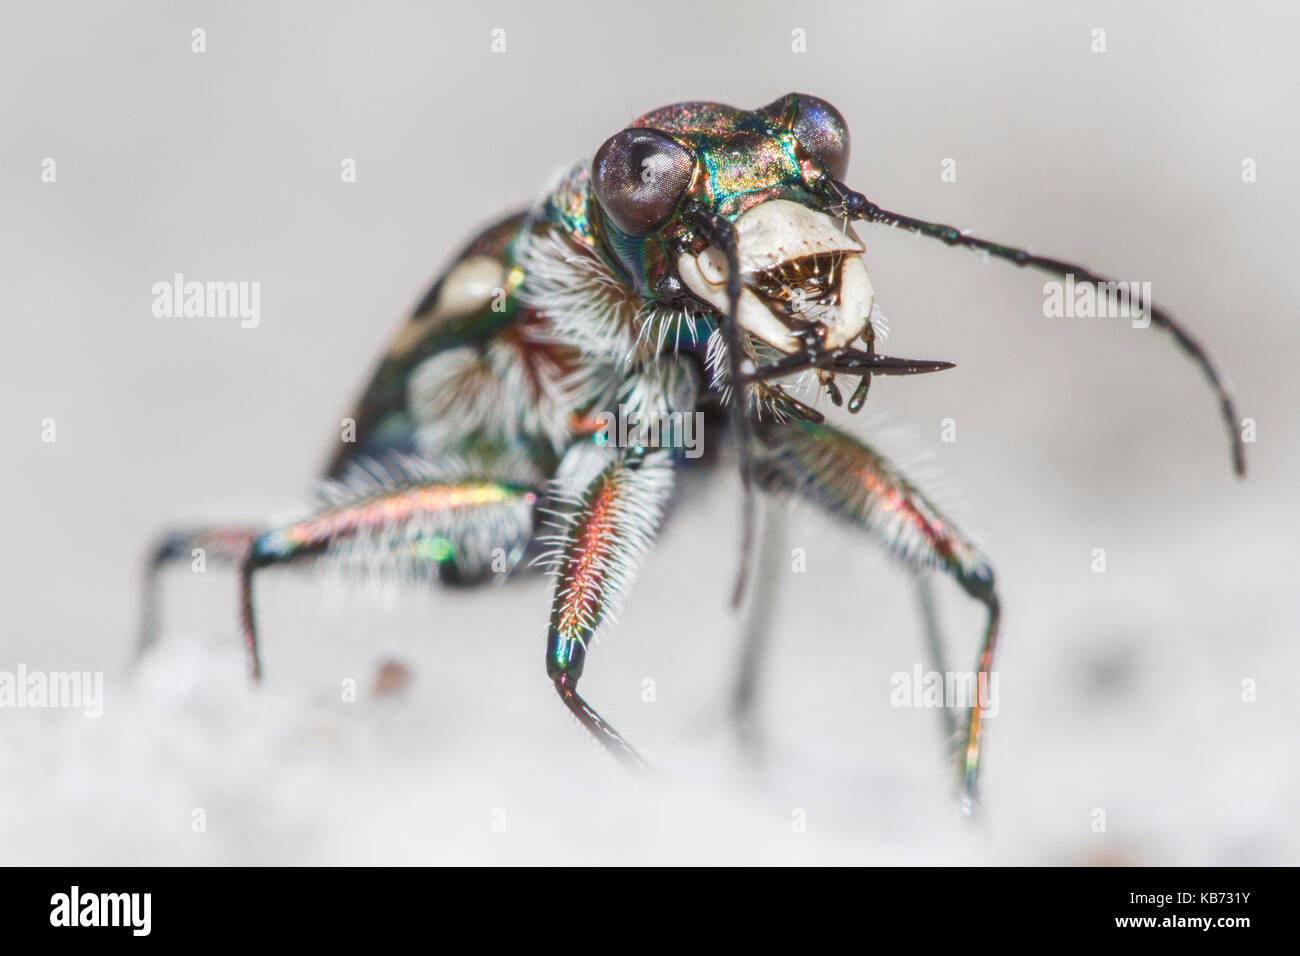 Front view of a Northern Dune Tiger Beetle (Cicindela hybrida), the Netherlands, Limburg, Brunssummerheide - Stock Image